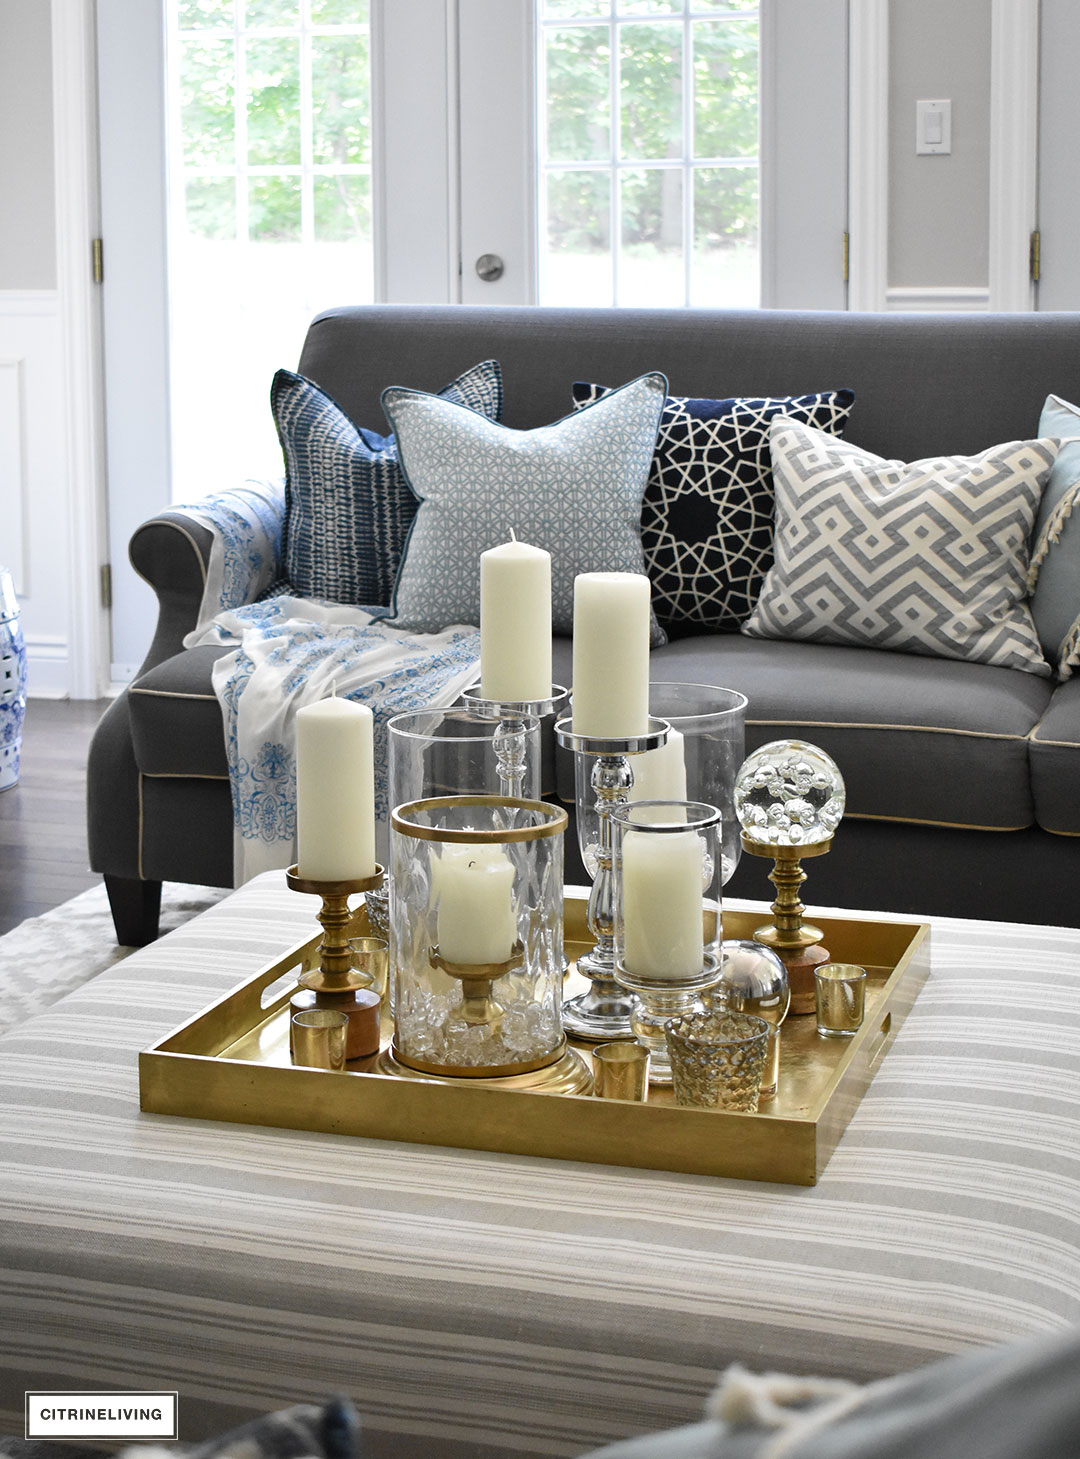 Make a visual statement with a clustered grouping of metal and glass candleholders in varying heights on your coffee table.